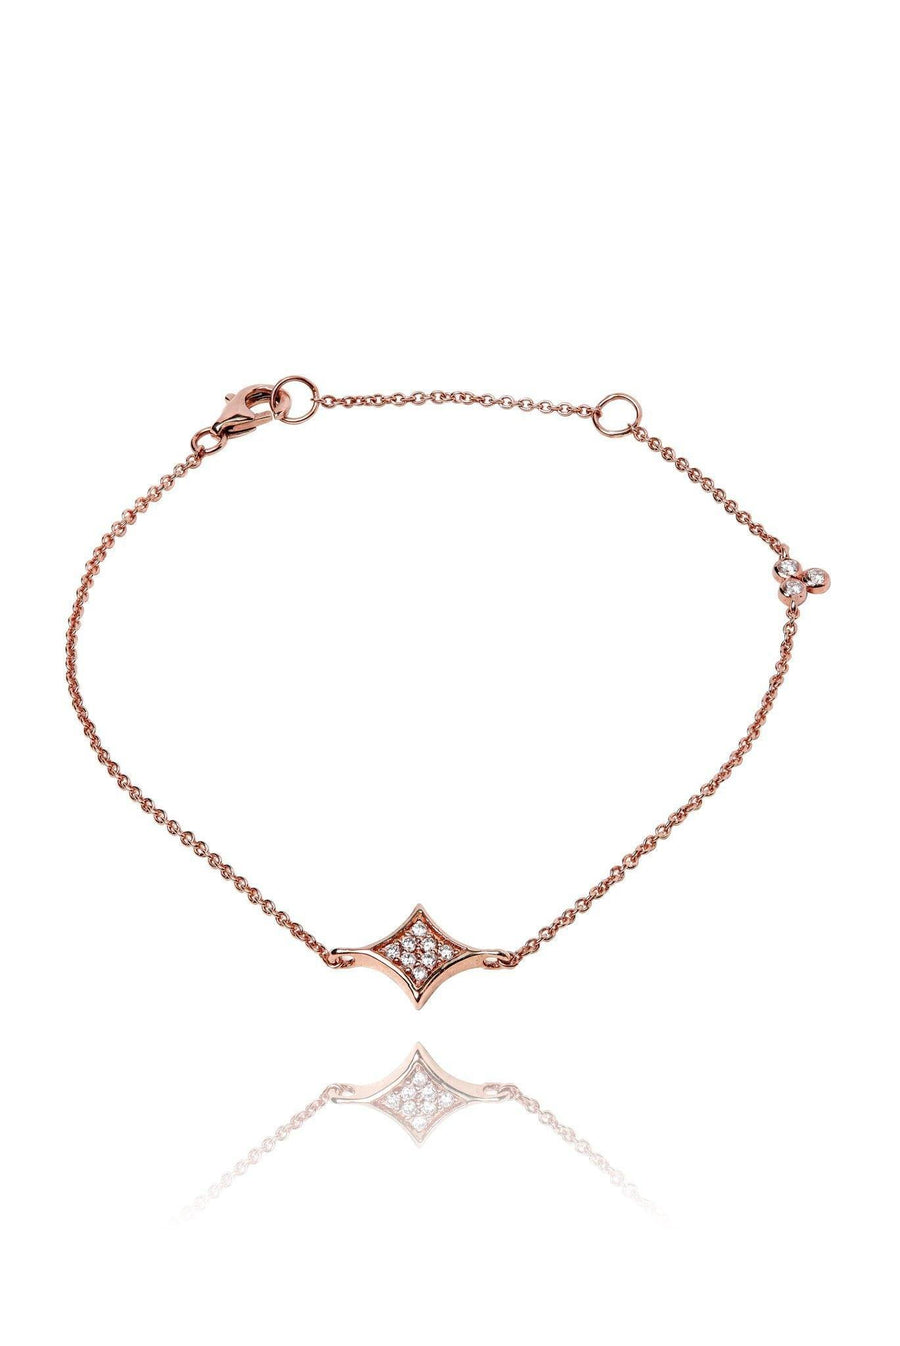 Rhombus Diamond Pavé Bracelet Bracelets Lark and Berry Rose Gold